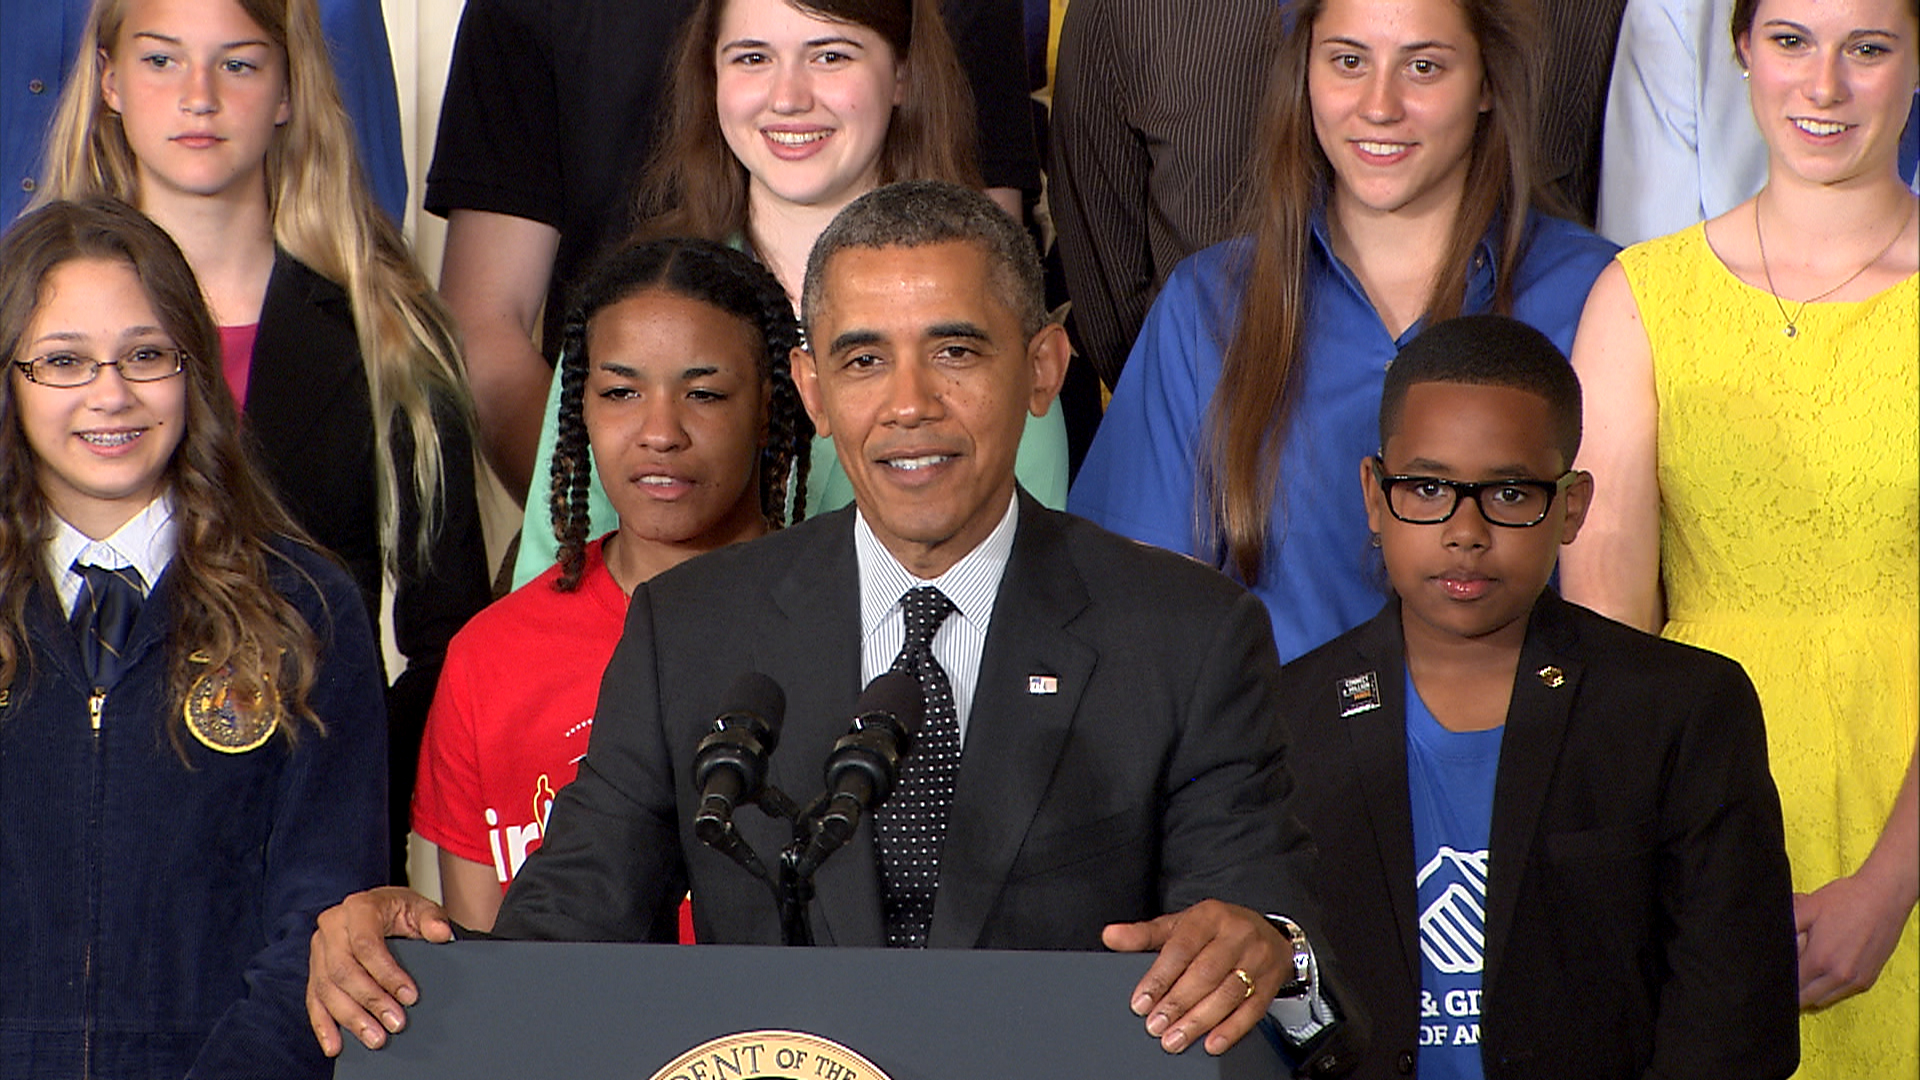 White House Science Fair Puts Whiz Kids in a Serious Spotlight